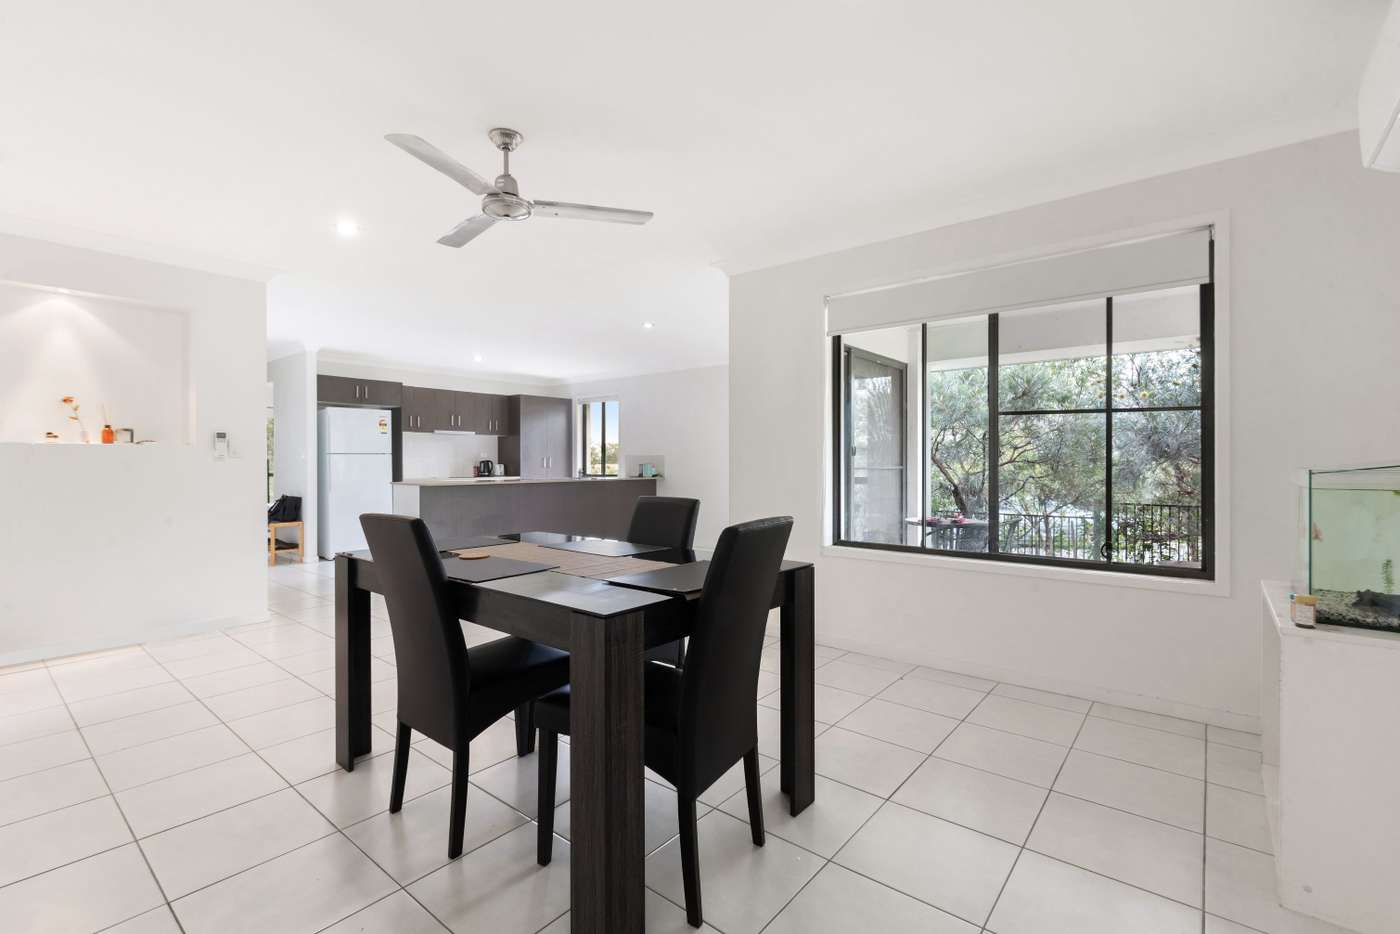 Fifth view of Homely house listing, 104 Grand Terrace, Waterford QLD 4133